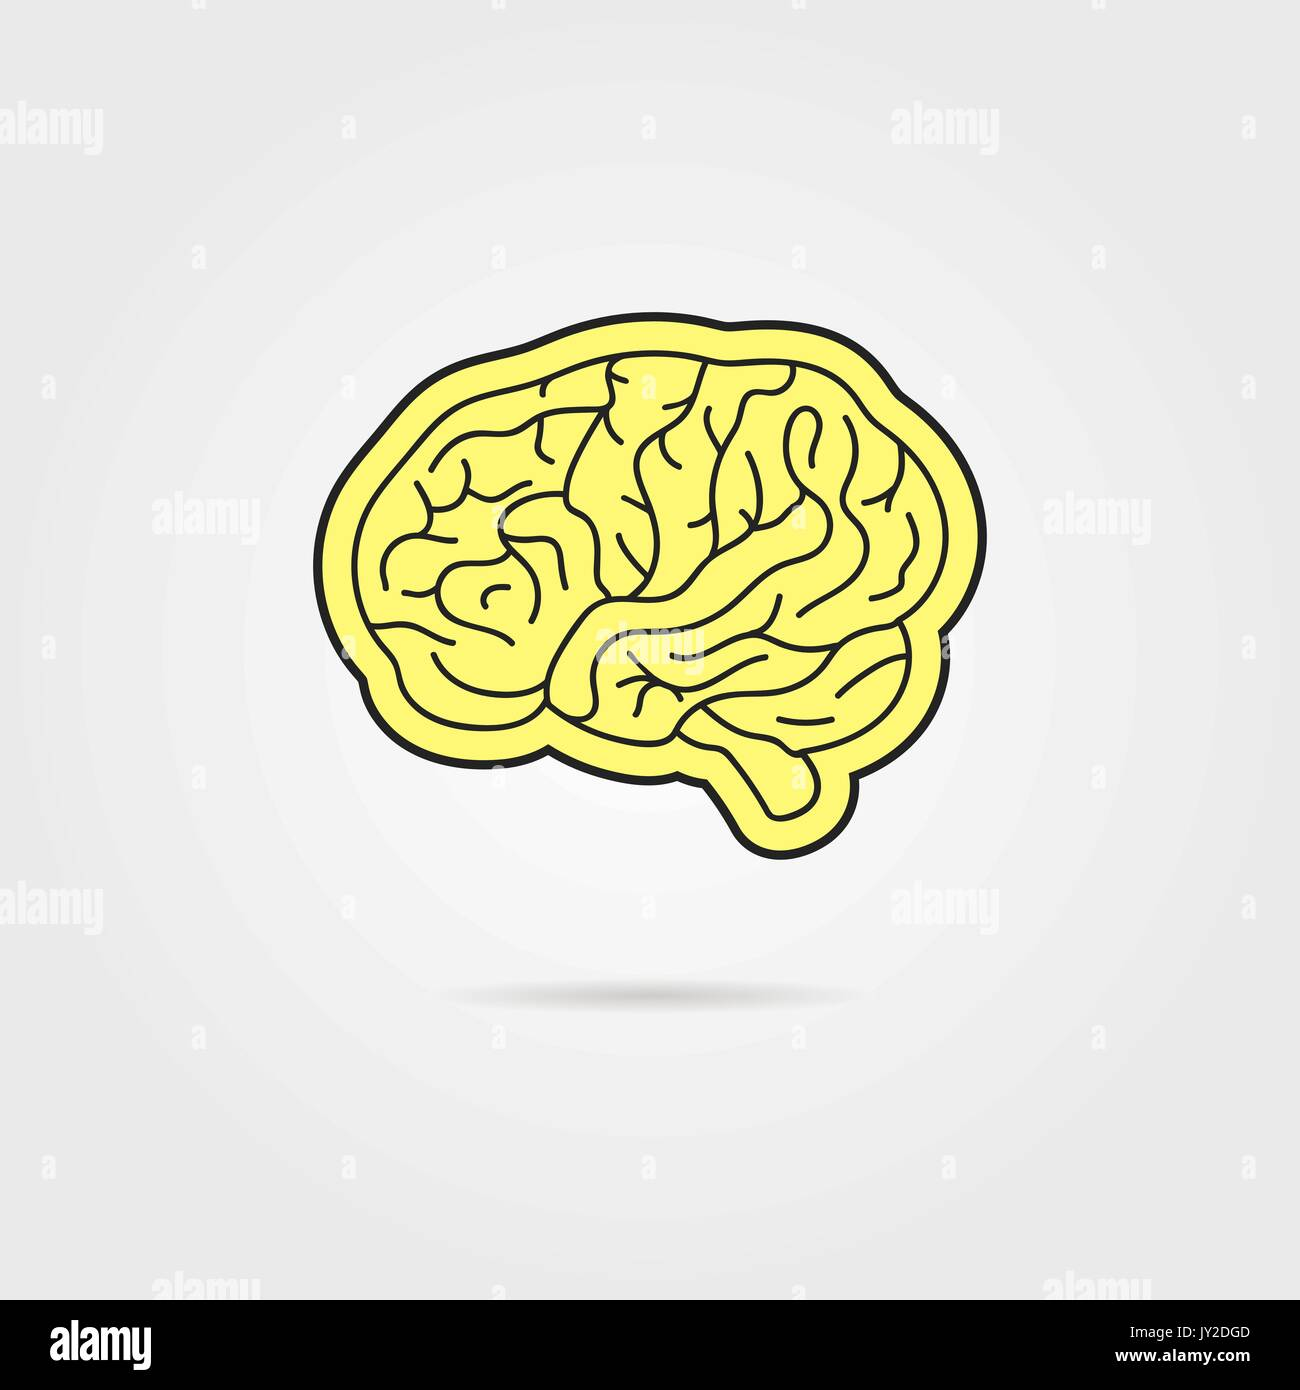 simple black and yellow brain - Stock Image